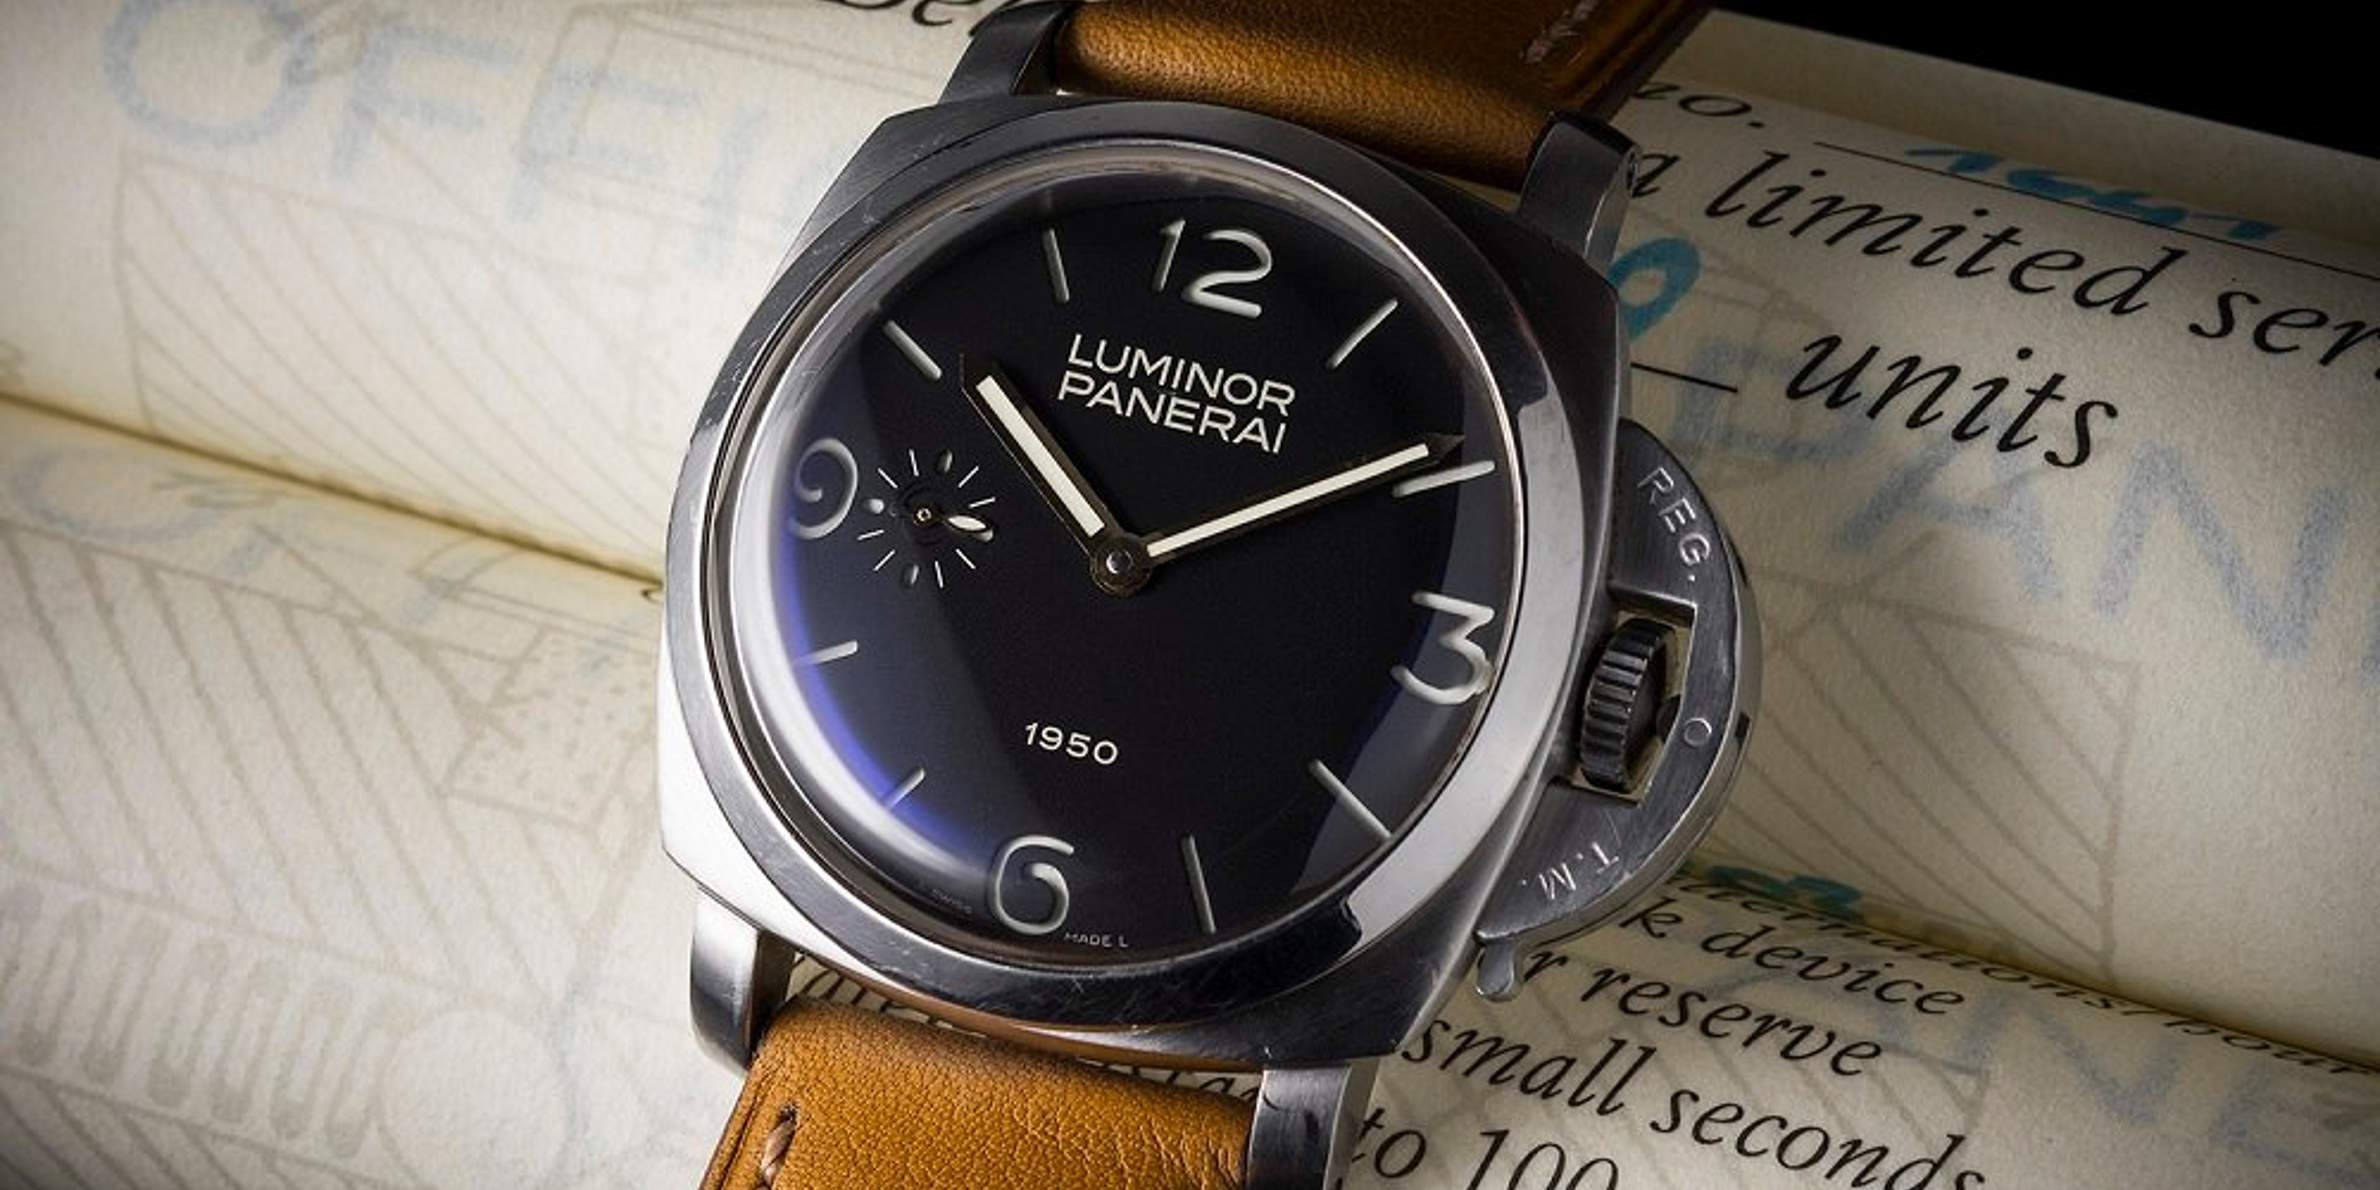 Legendary Watch Brands: Officine Panerai – Luxury Watches with a Sporty Touch